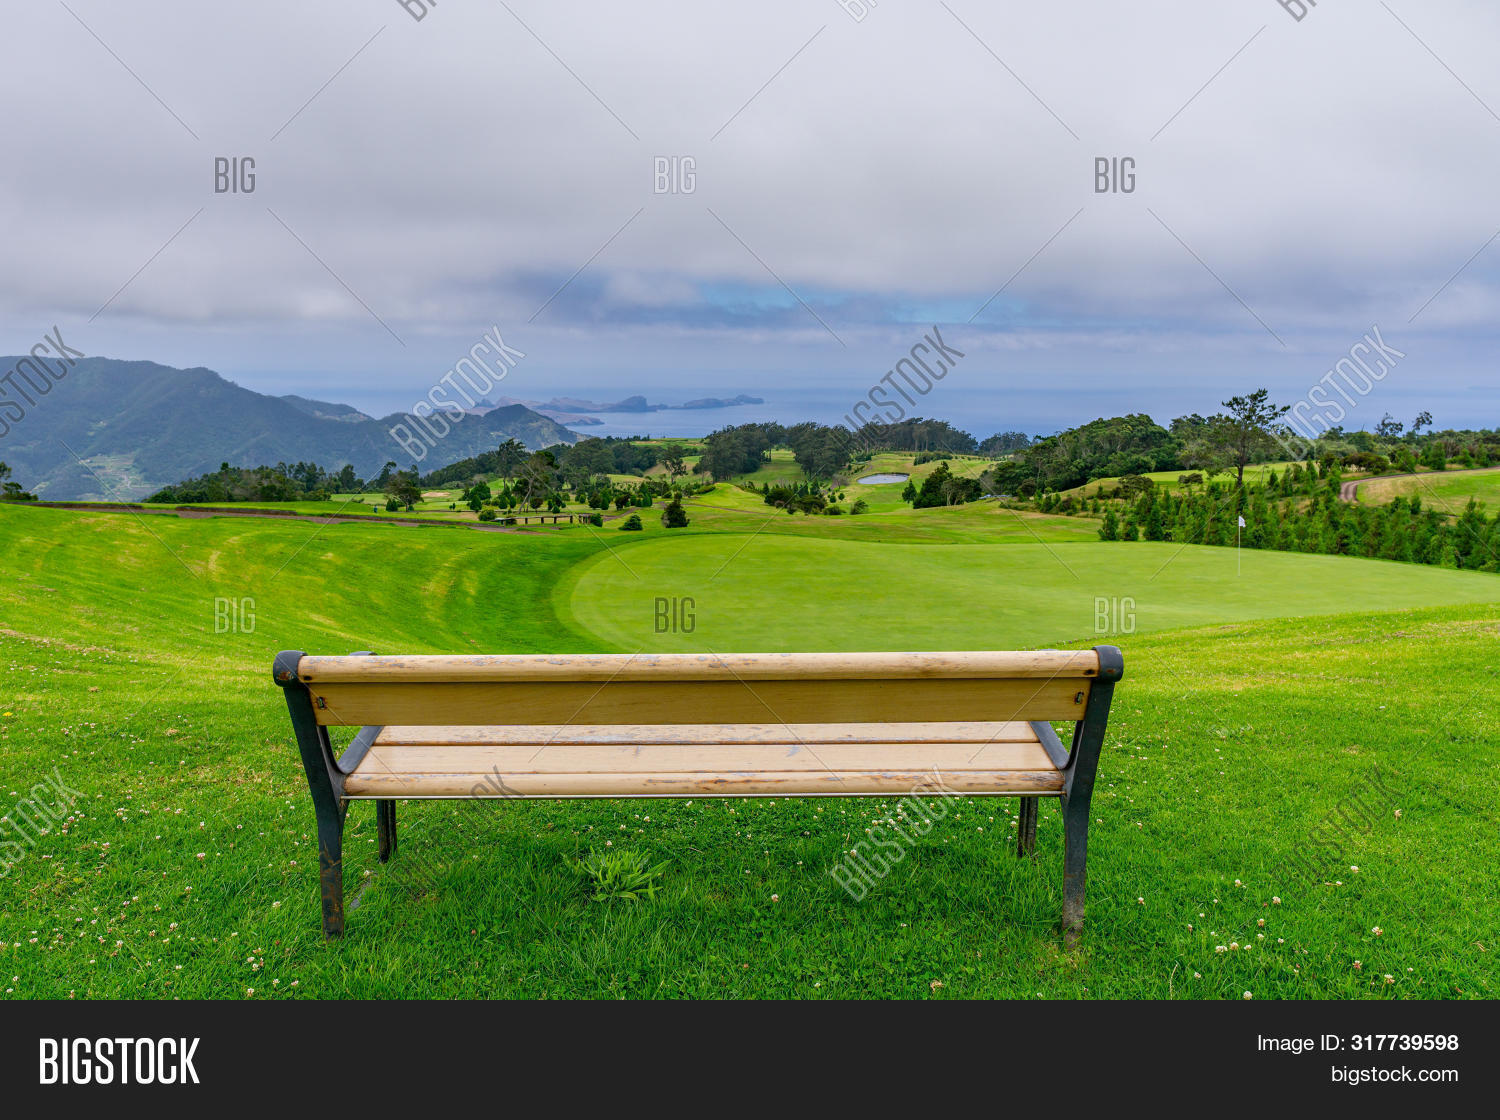 Outstanding Park Bench Outdoor Image Photo Free Trial Bigstock Gmtry Best Dining Table And Chair Ideas Images Gmtryco